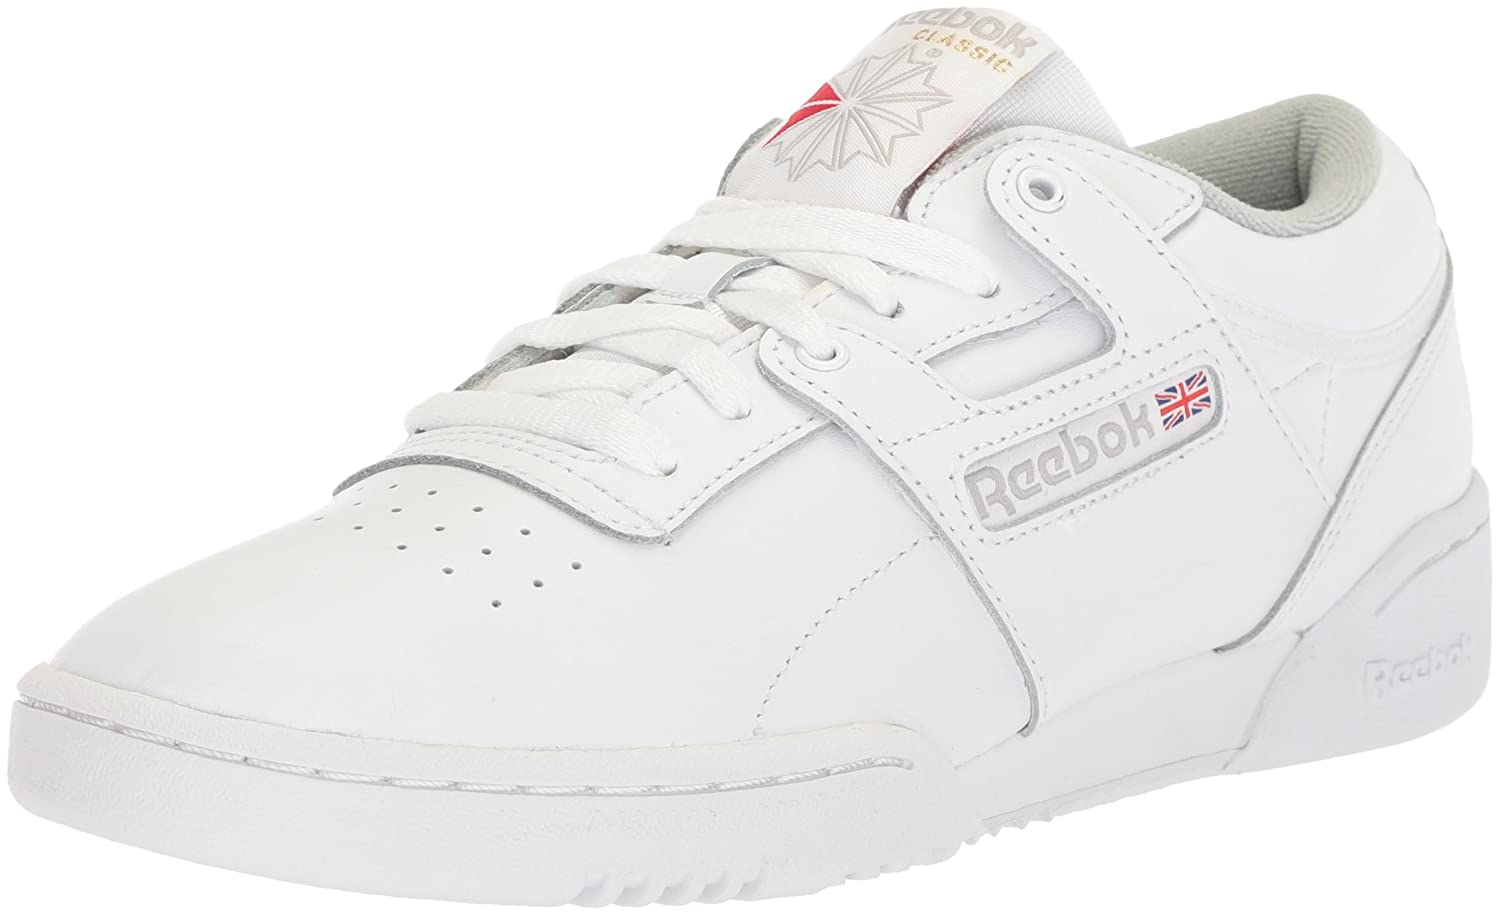 Reebok Men's Workout Low B073YDM6BS 10.5 D(M) US|Int-white/Grey